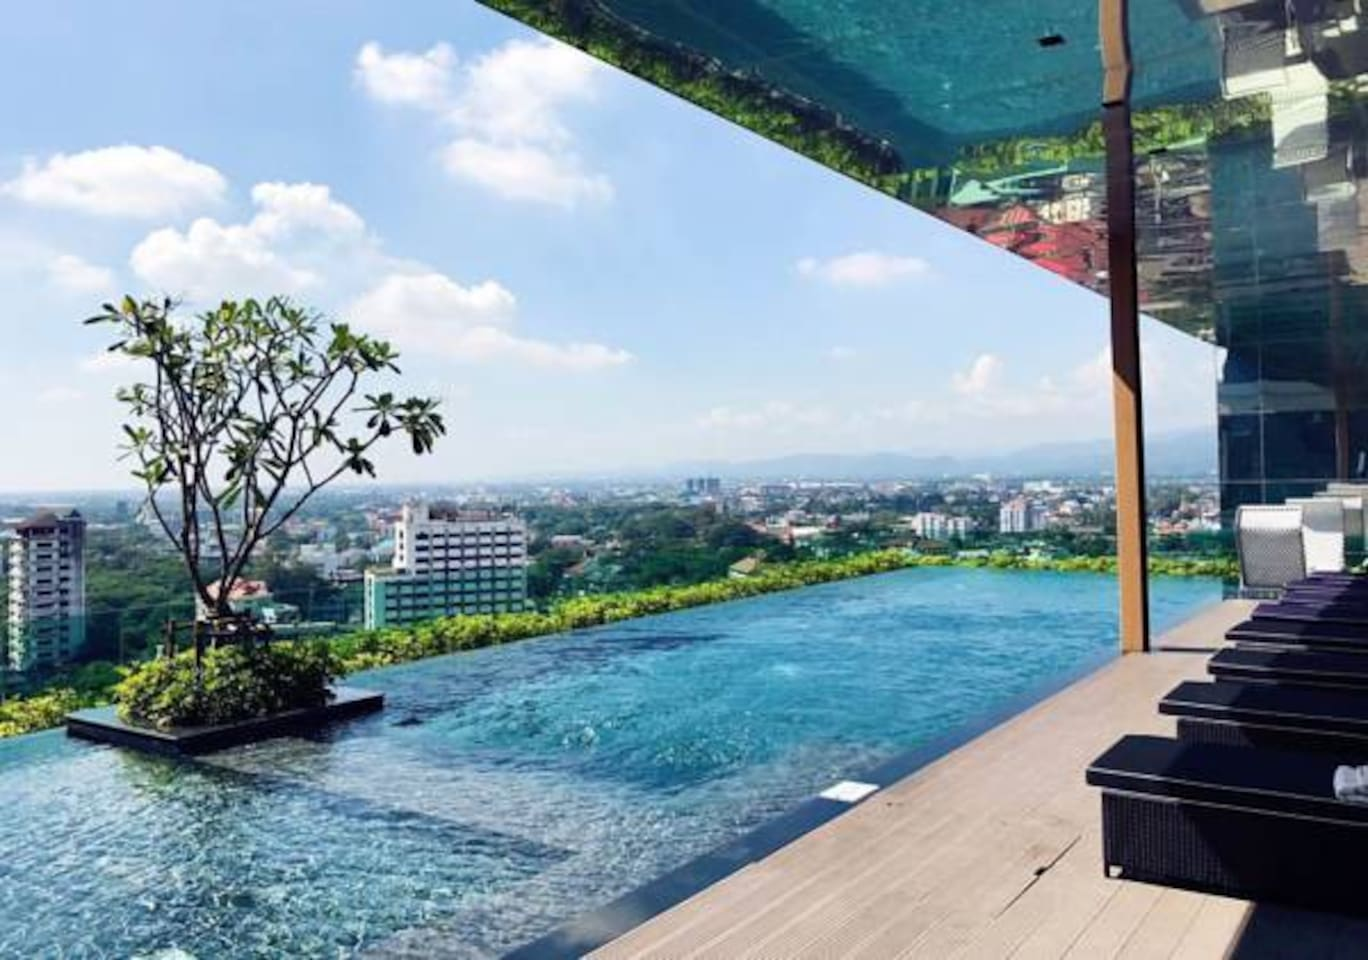 Roof top swimming pool with amazing view of the city